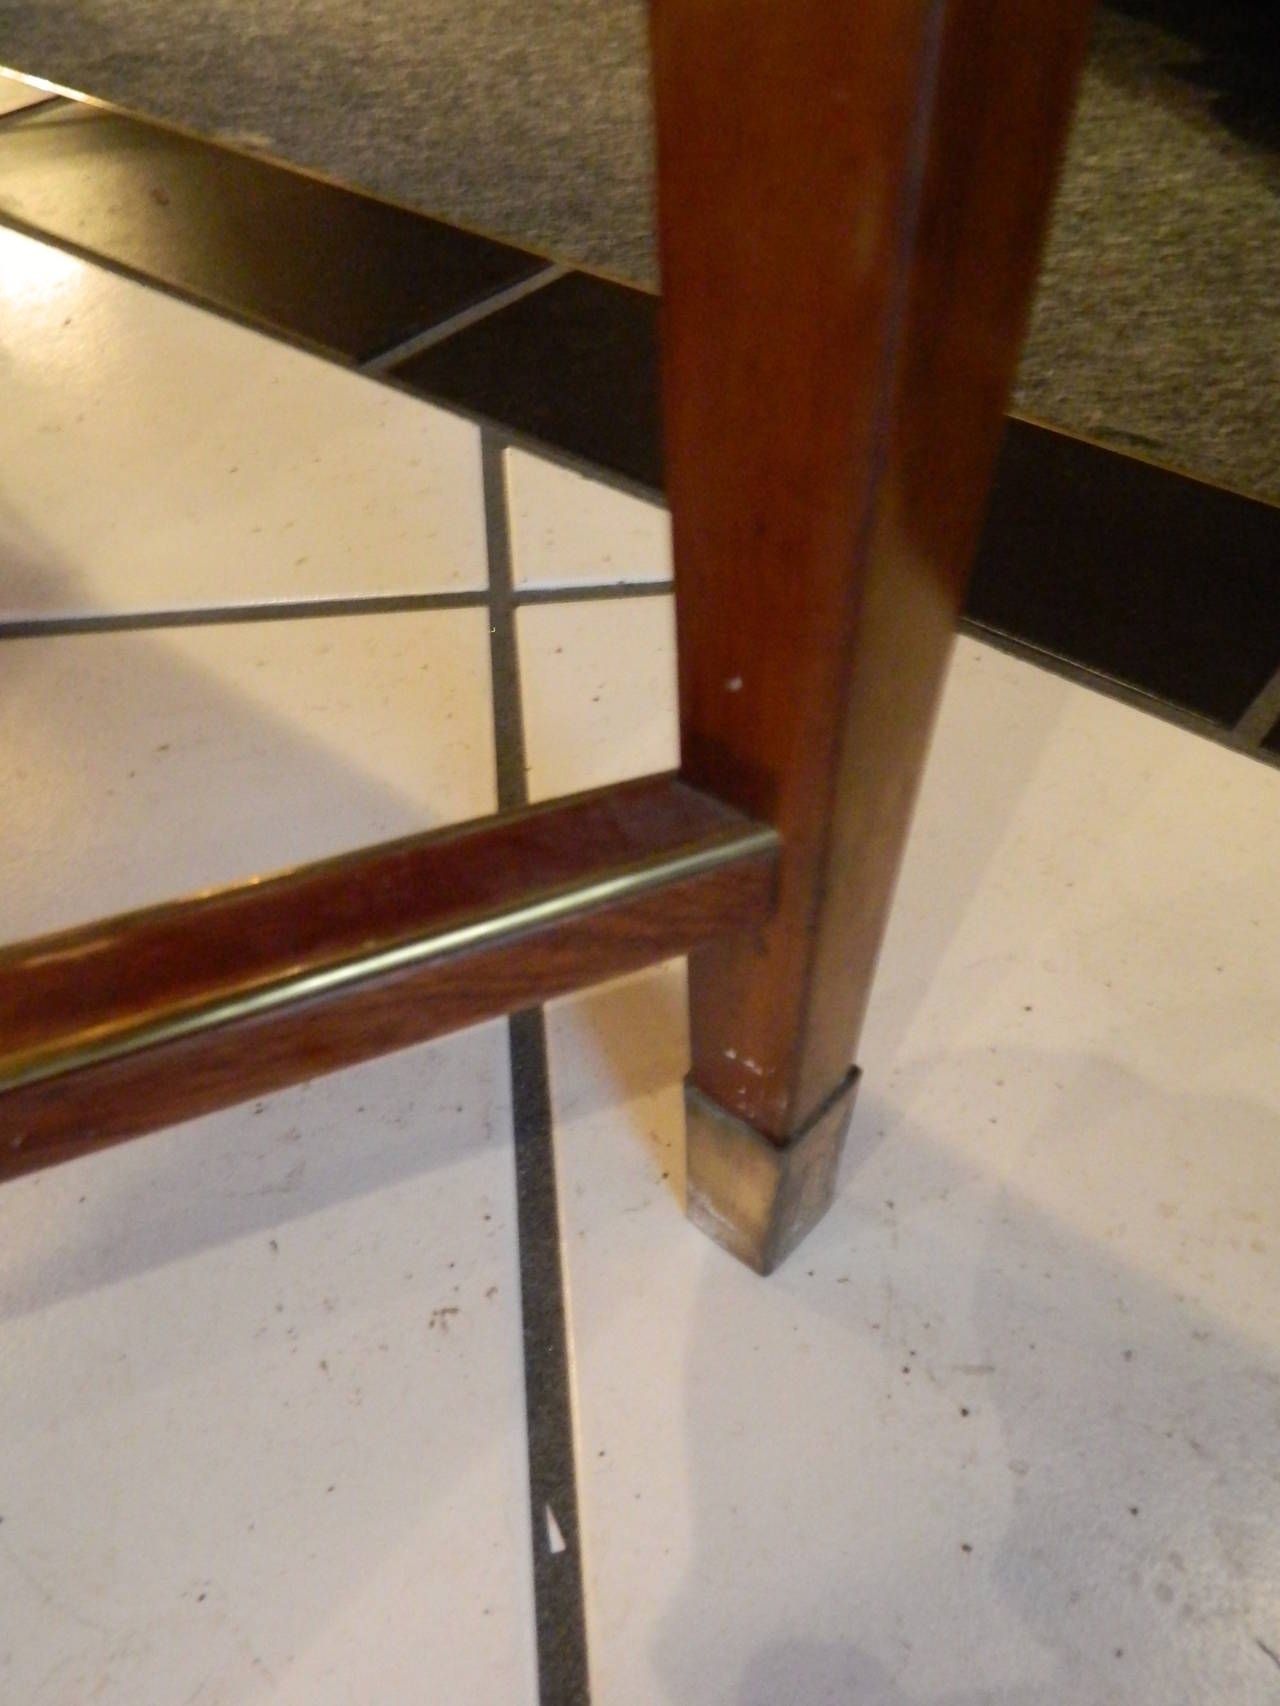 Russian Brass Mounted Mahogany Writing Table or Desk, 19th Century In Excellent Condition For Sale In Savannah, GA